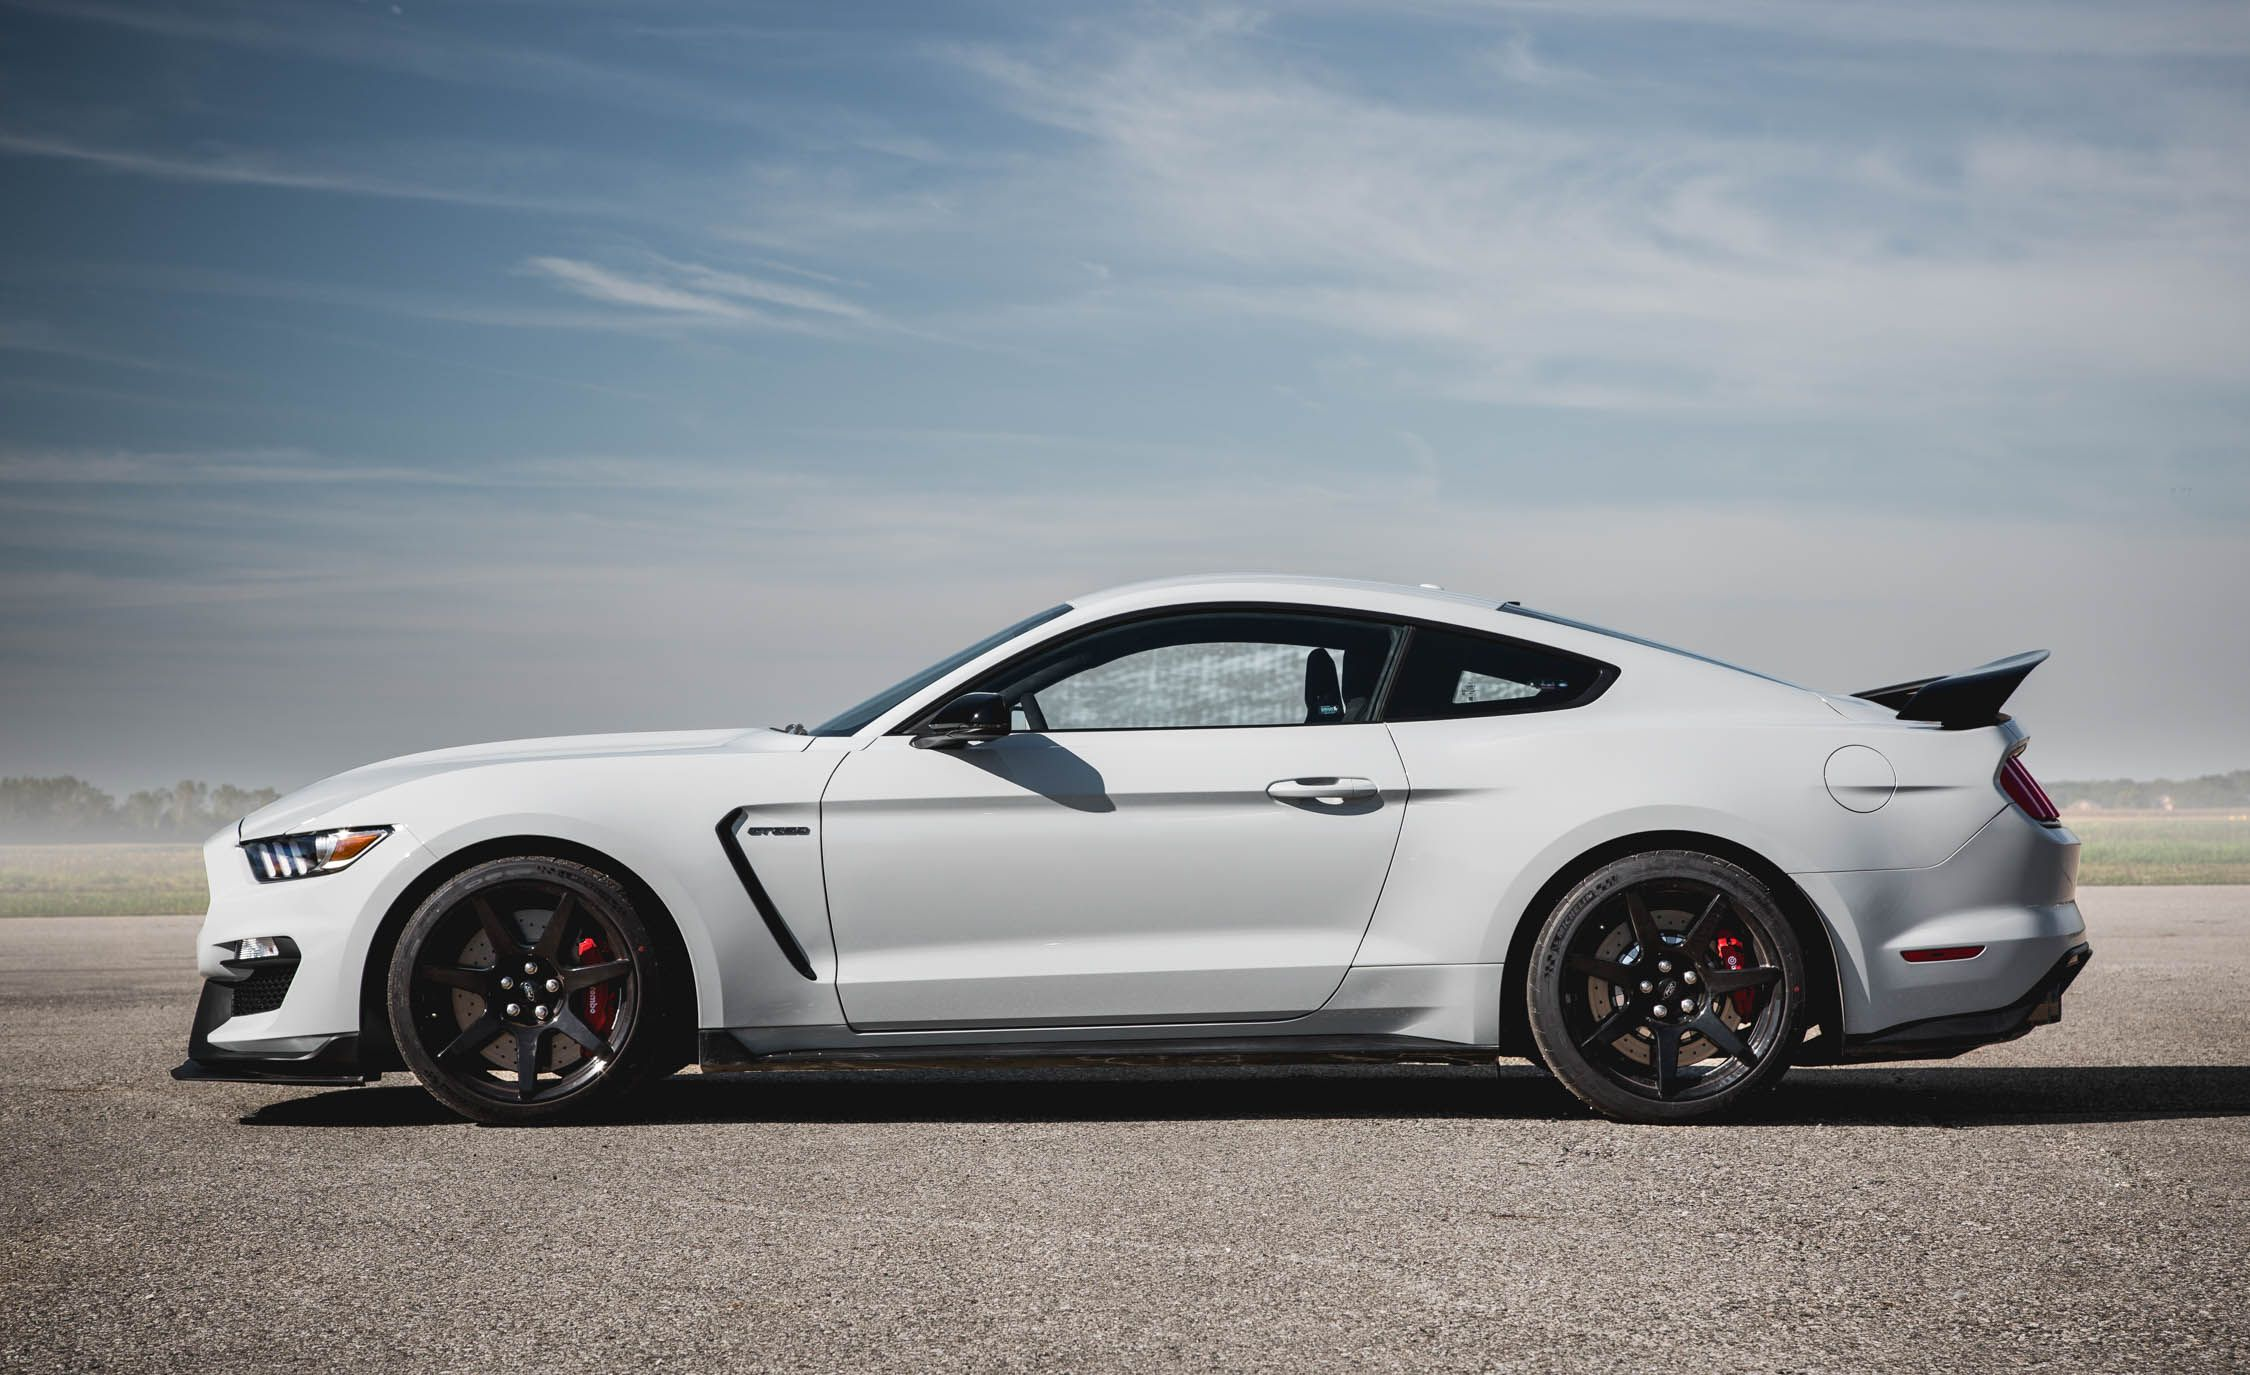 2018 ford mustang shelby gt500 specs changes and release date in ford s history the gt500 was their most powerful mustang they could provide